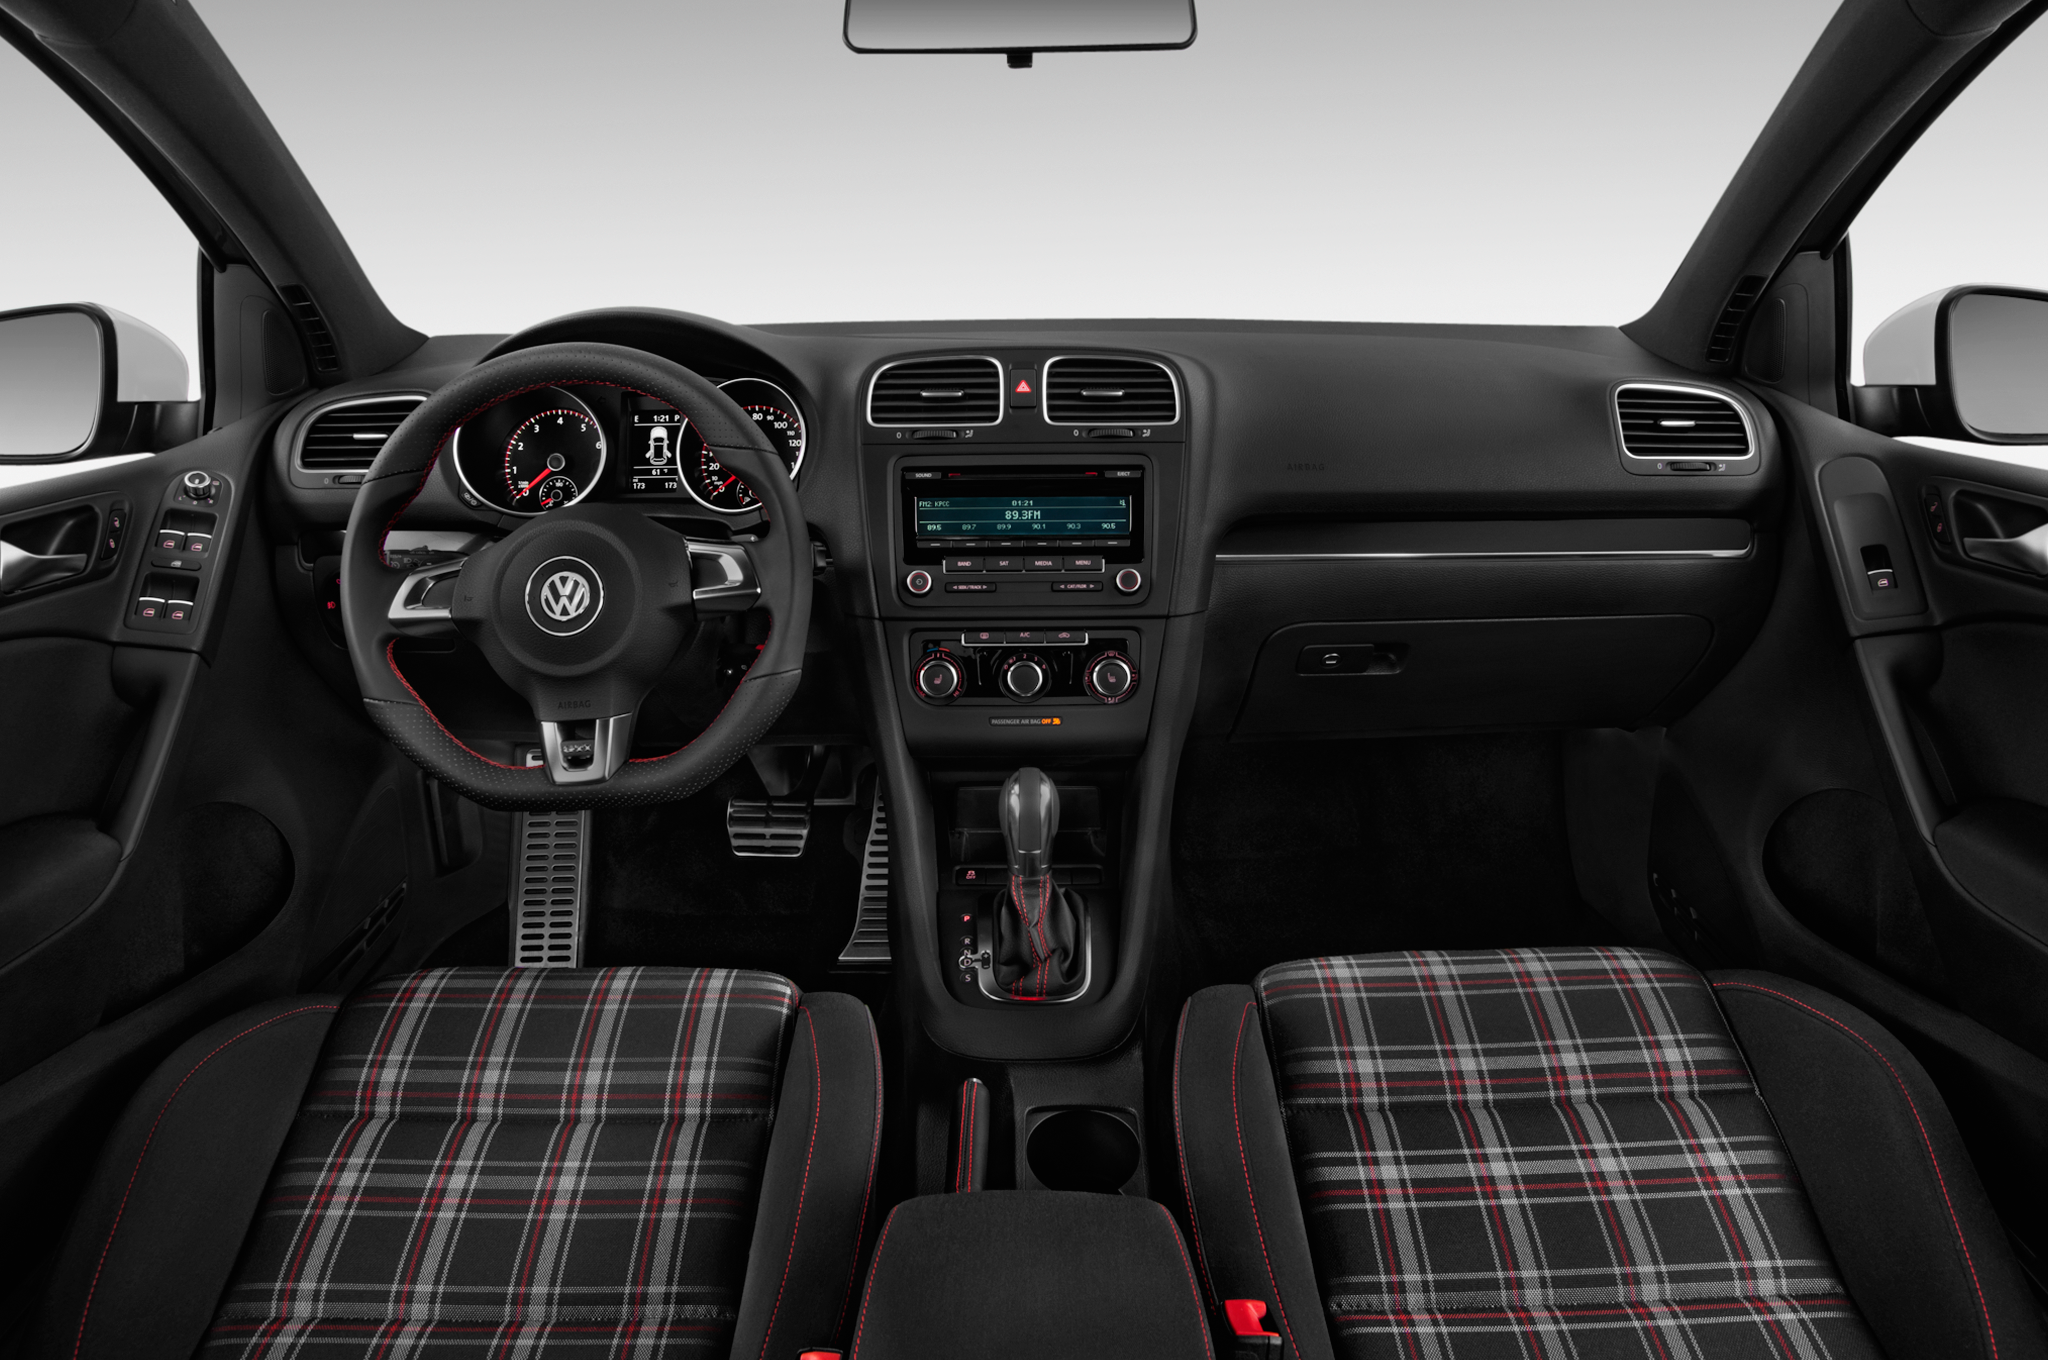 2013 volkswagen gti drivers edition 4dr hatchback specs and prices.